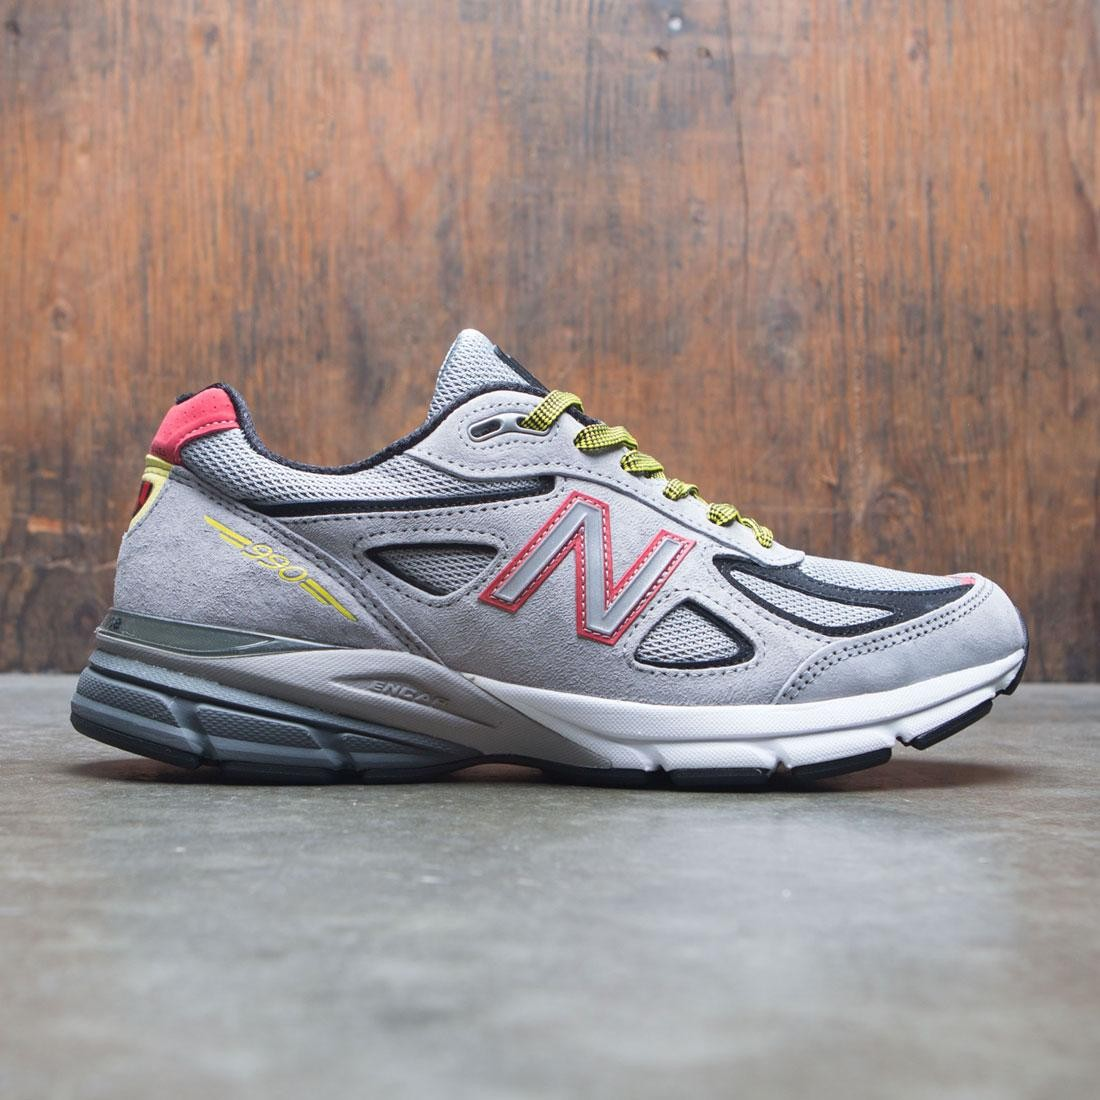 check out 83e39 f250d New Balance x DTLR Men DMV 990v4 M990DMV4 - Made In USA gray